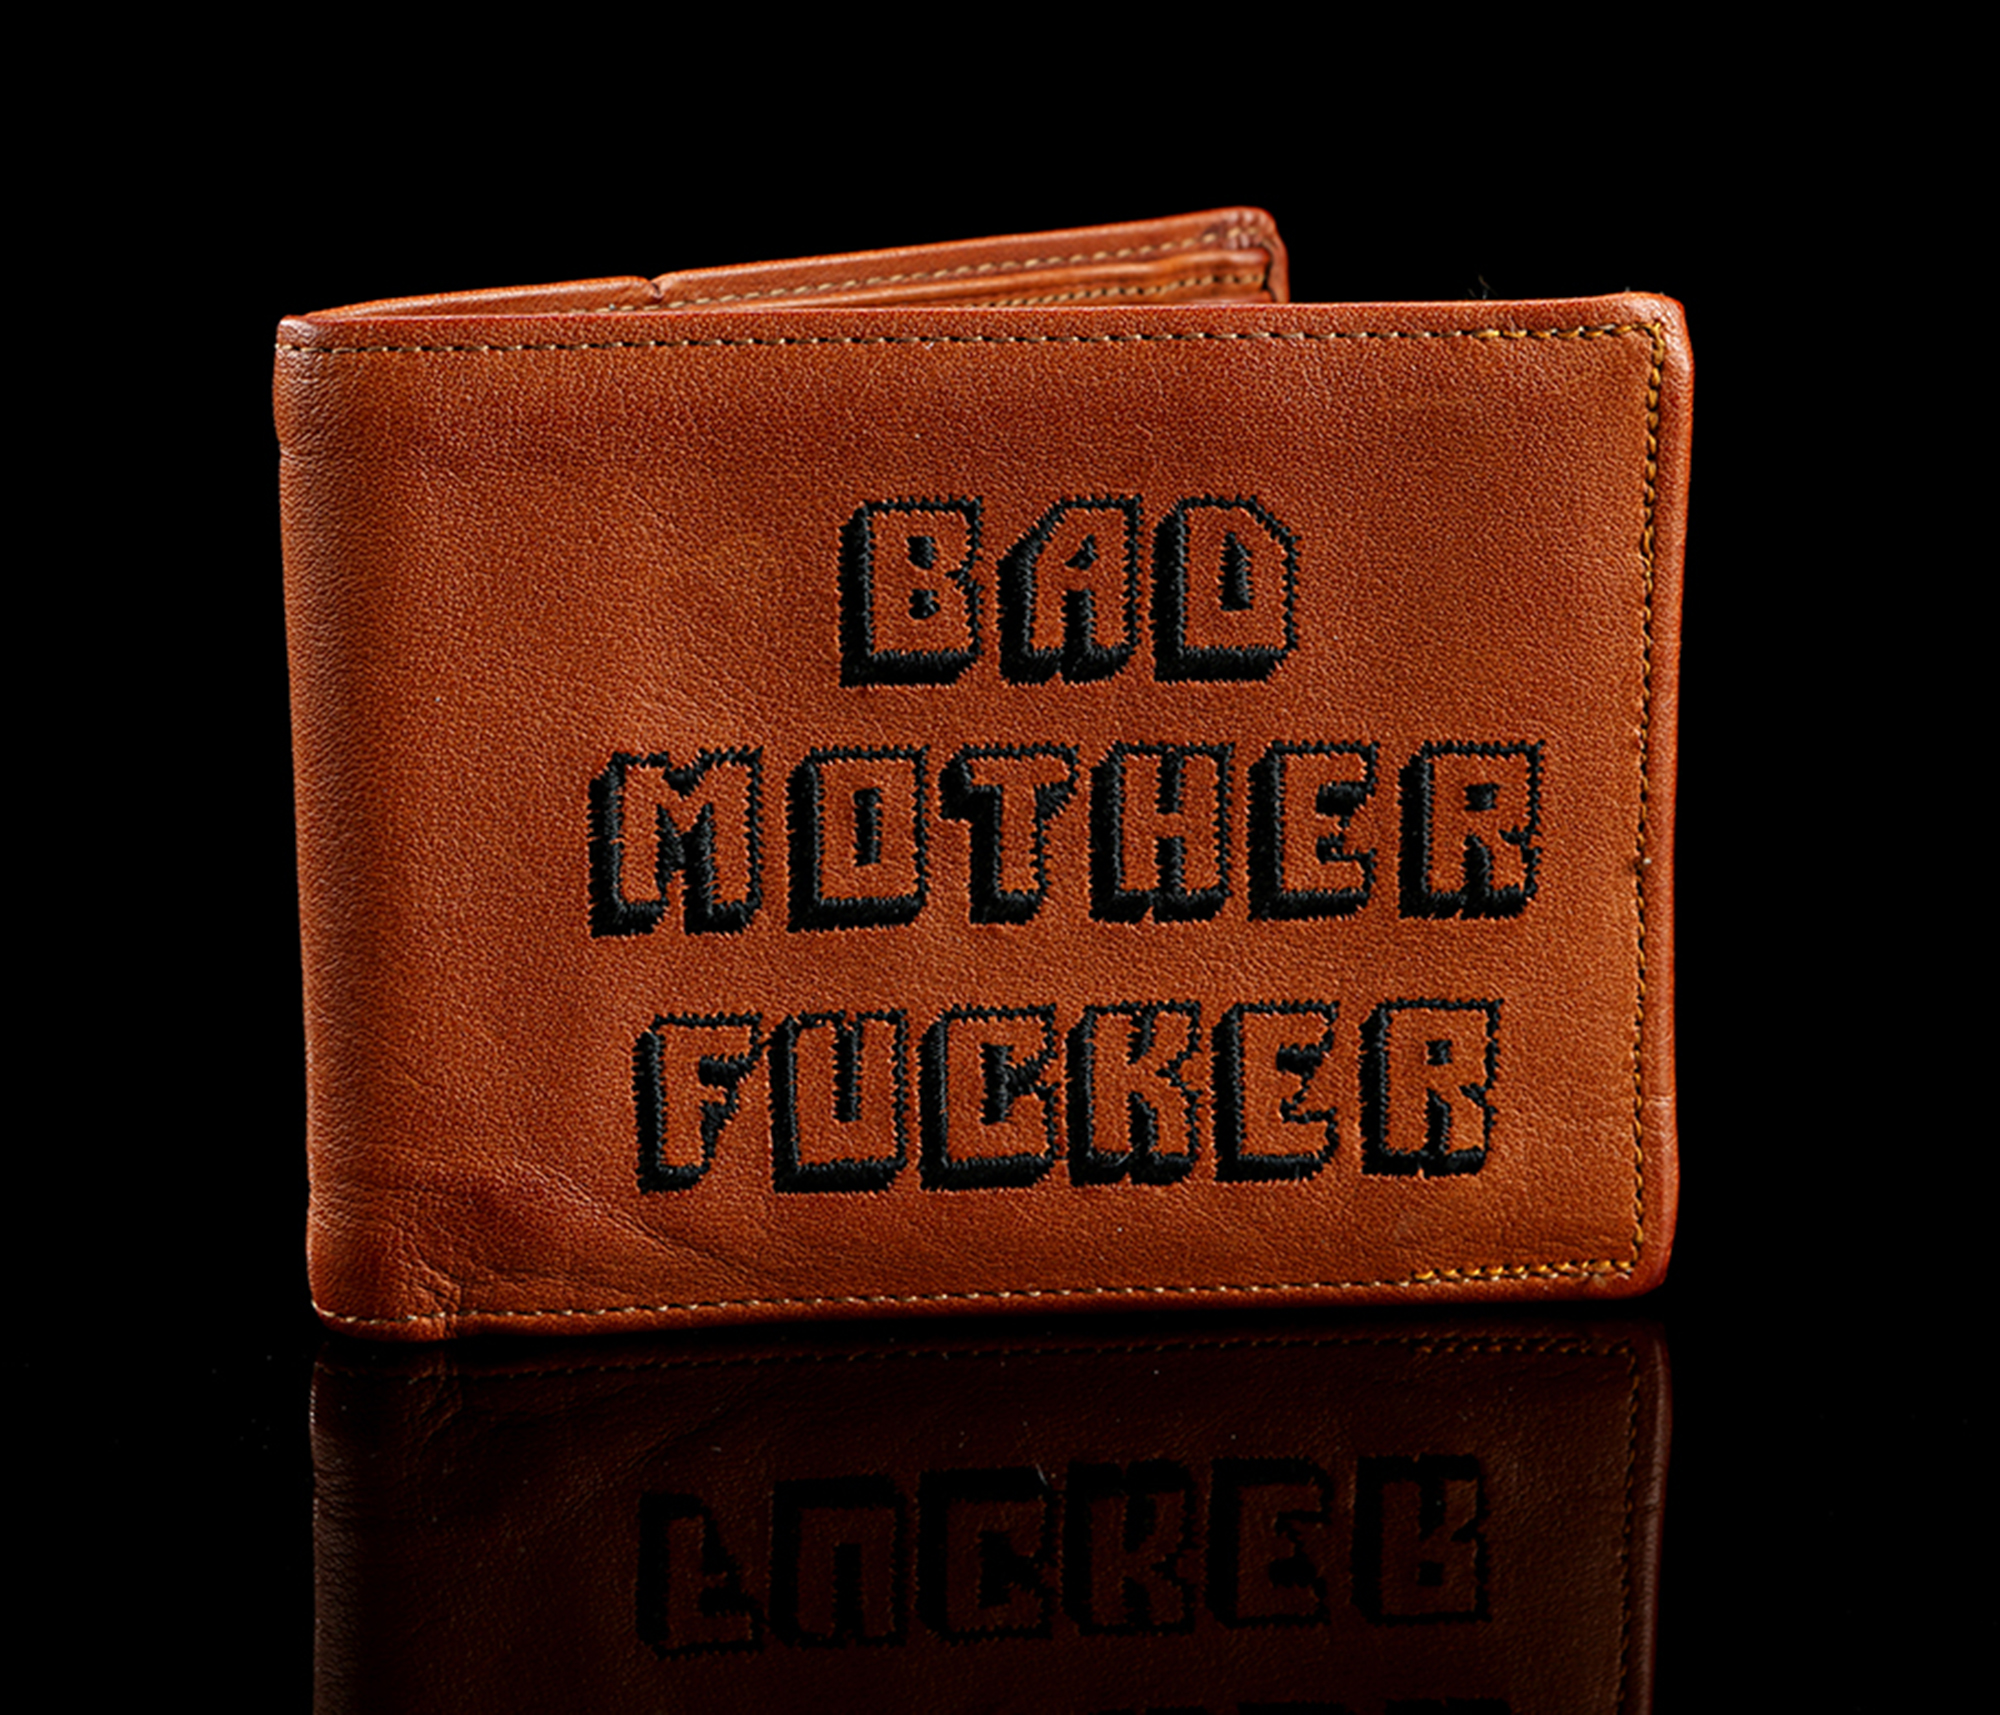 Bad Mother Fucker Wallet from 'Pulp Fiction' (1994) - Image courtesy of Prop Store London for Homesick Magazine Issue #2   www.propstore.com